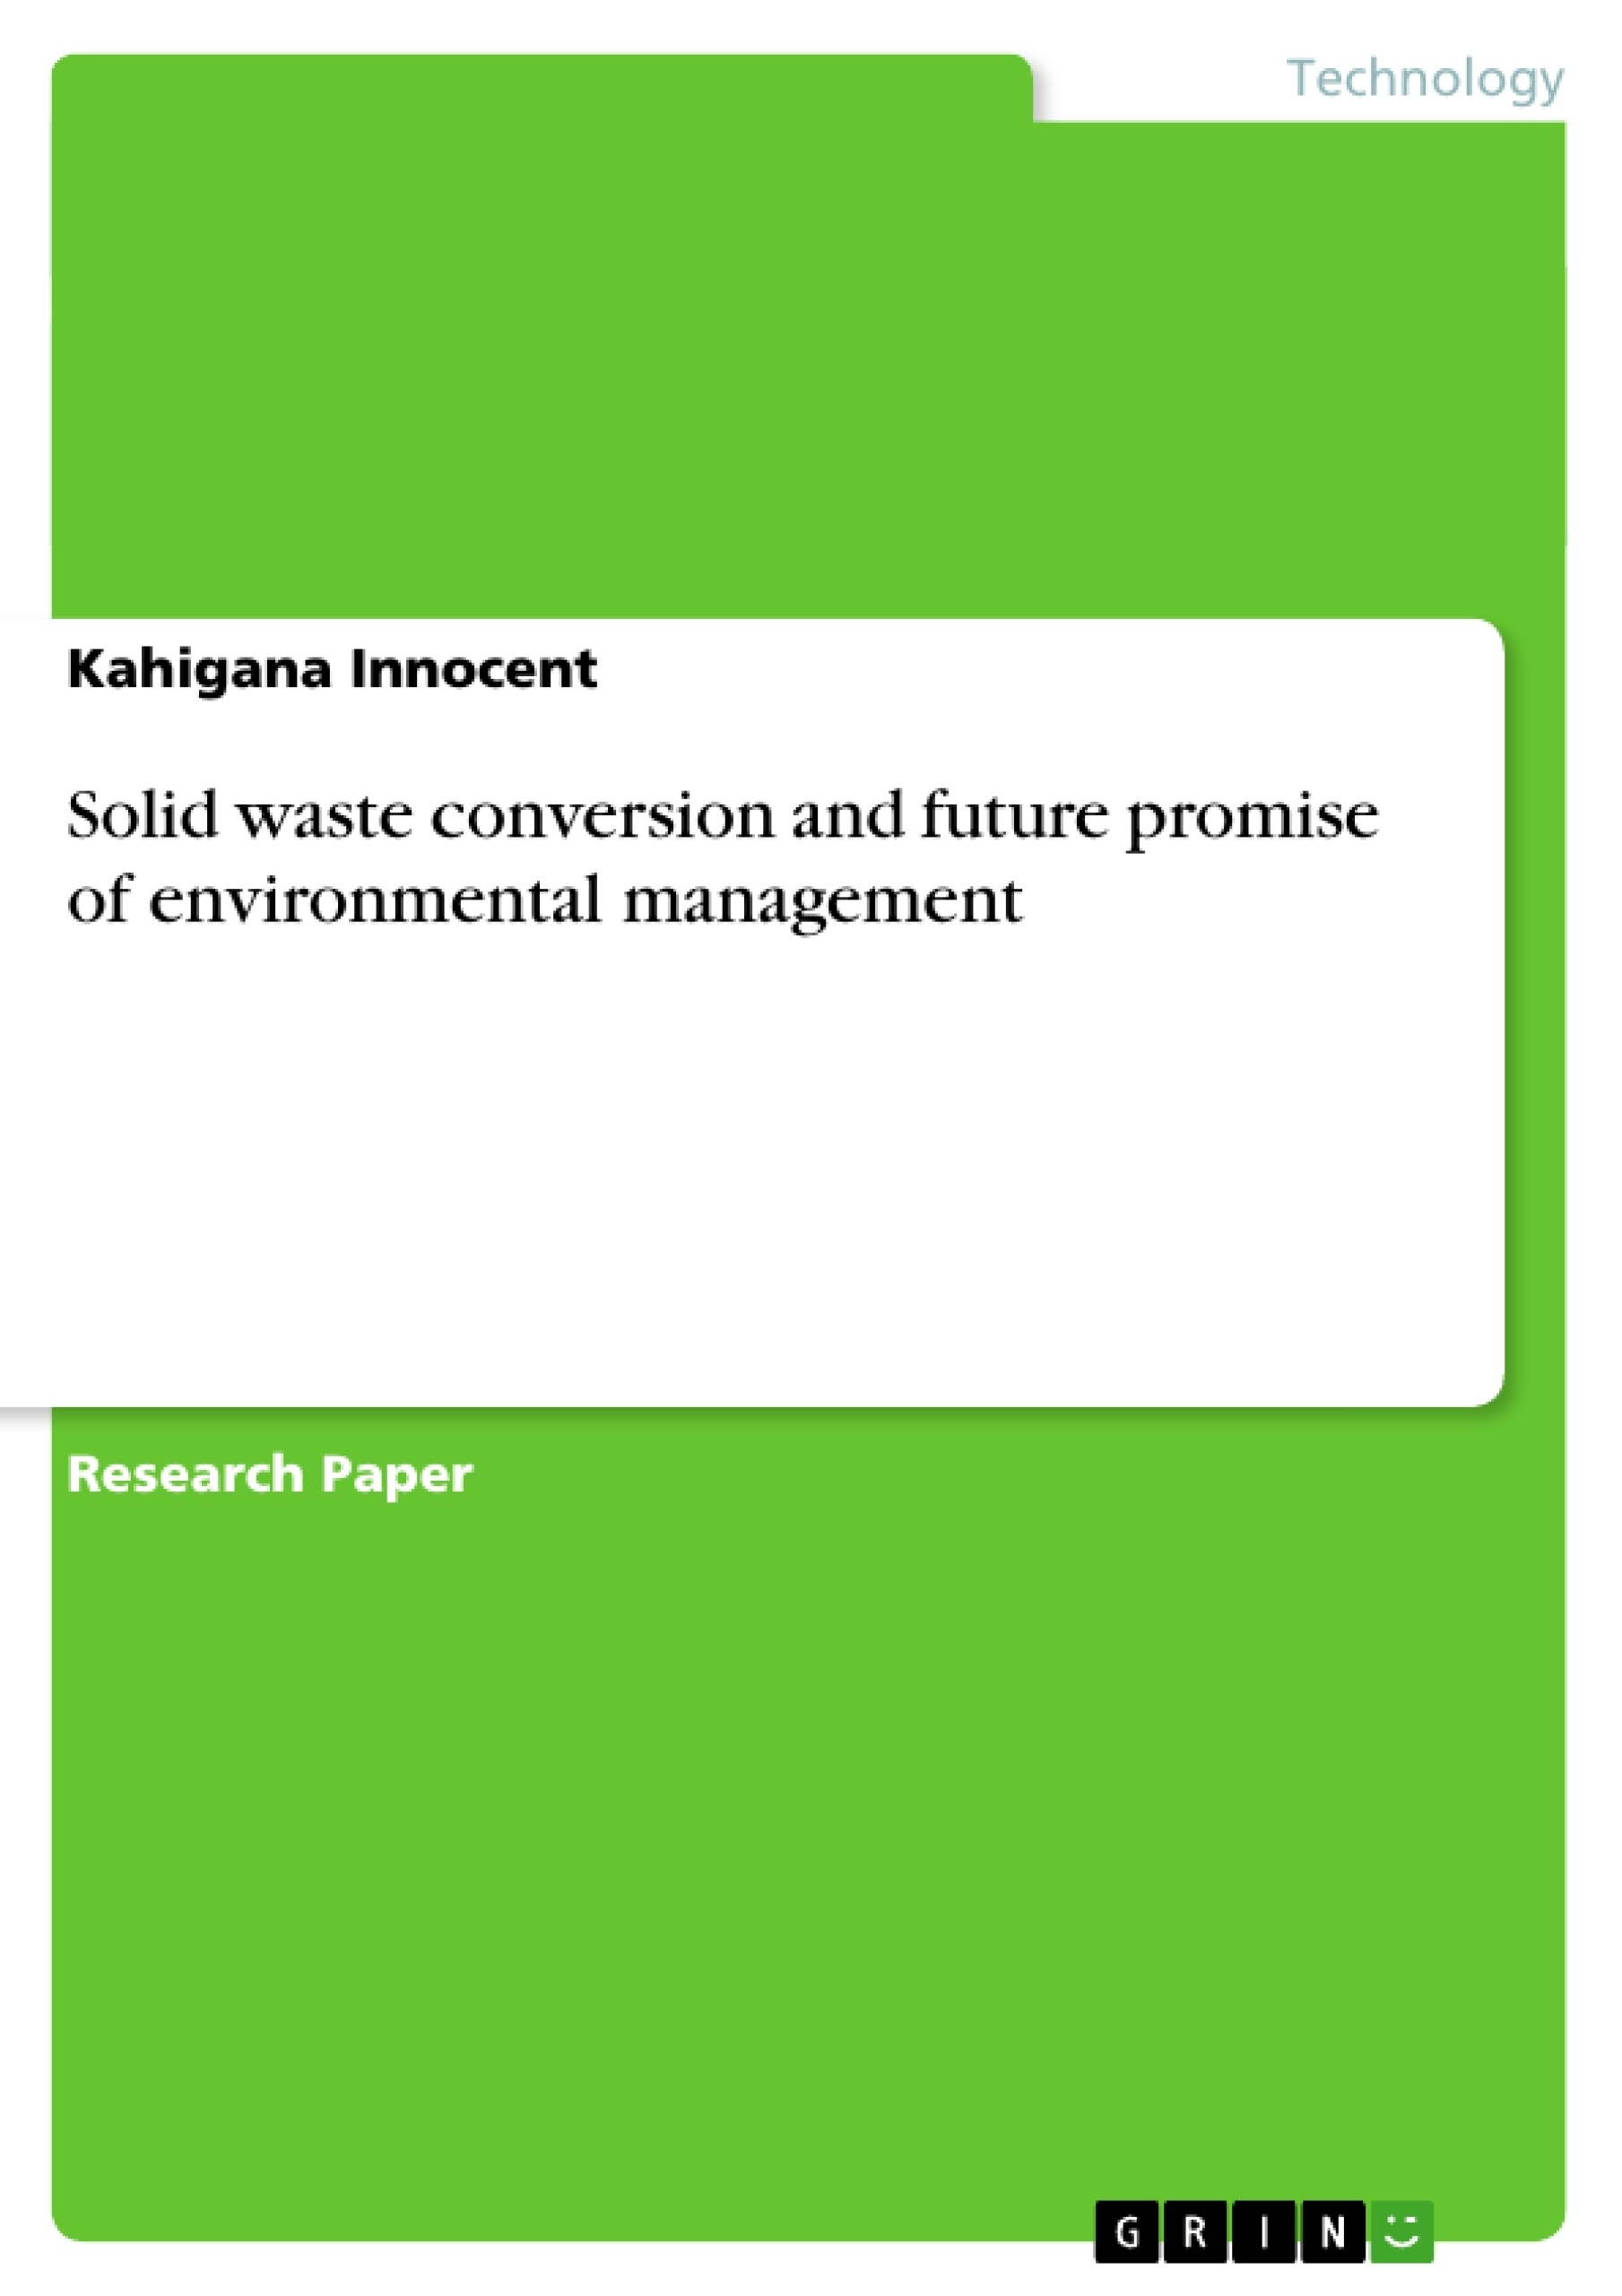 Title: Solid waste conversion and future promise of environmental management